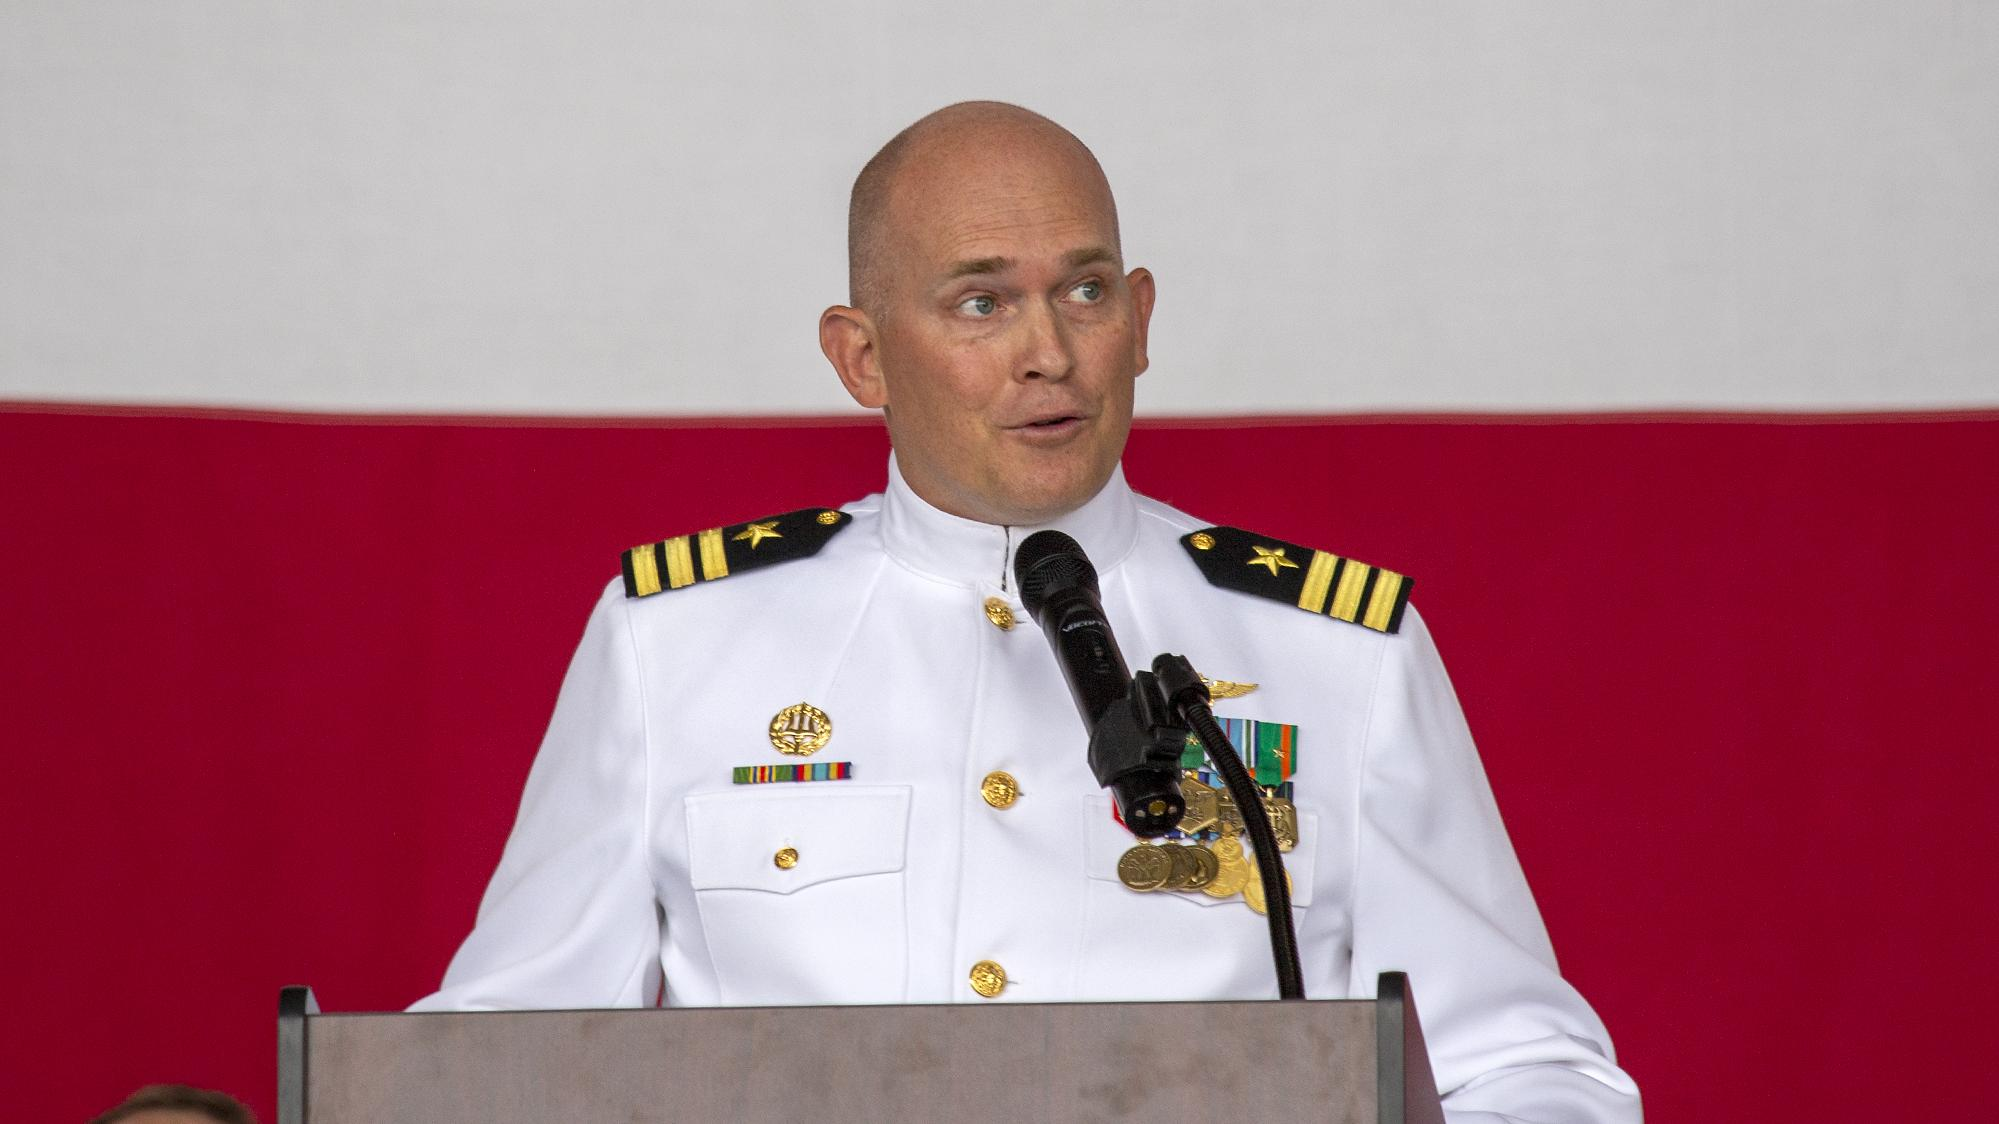 Cmdr. Paul Meyer speaks during his change of command ceremony